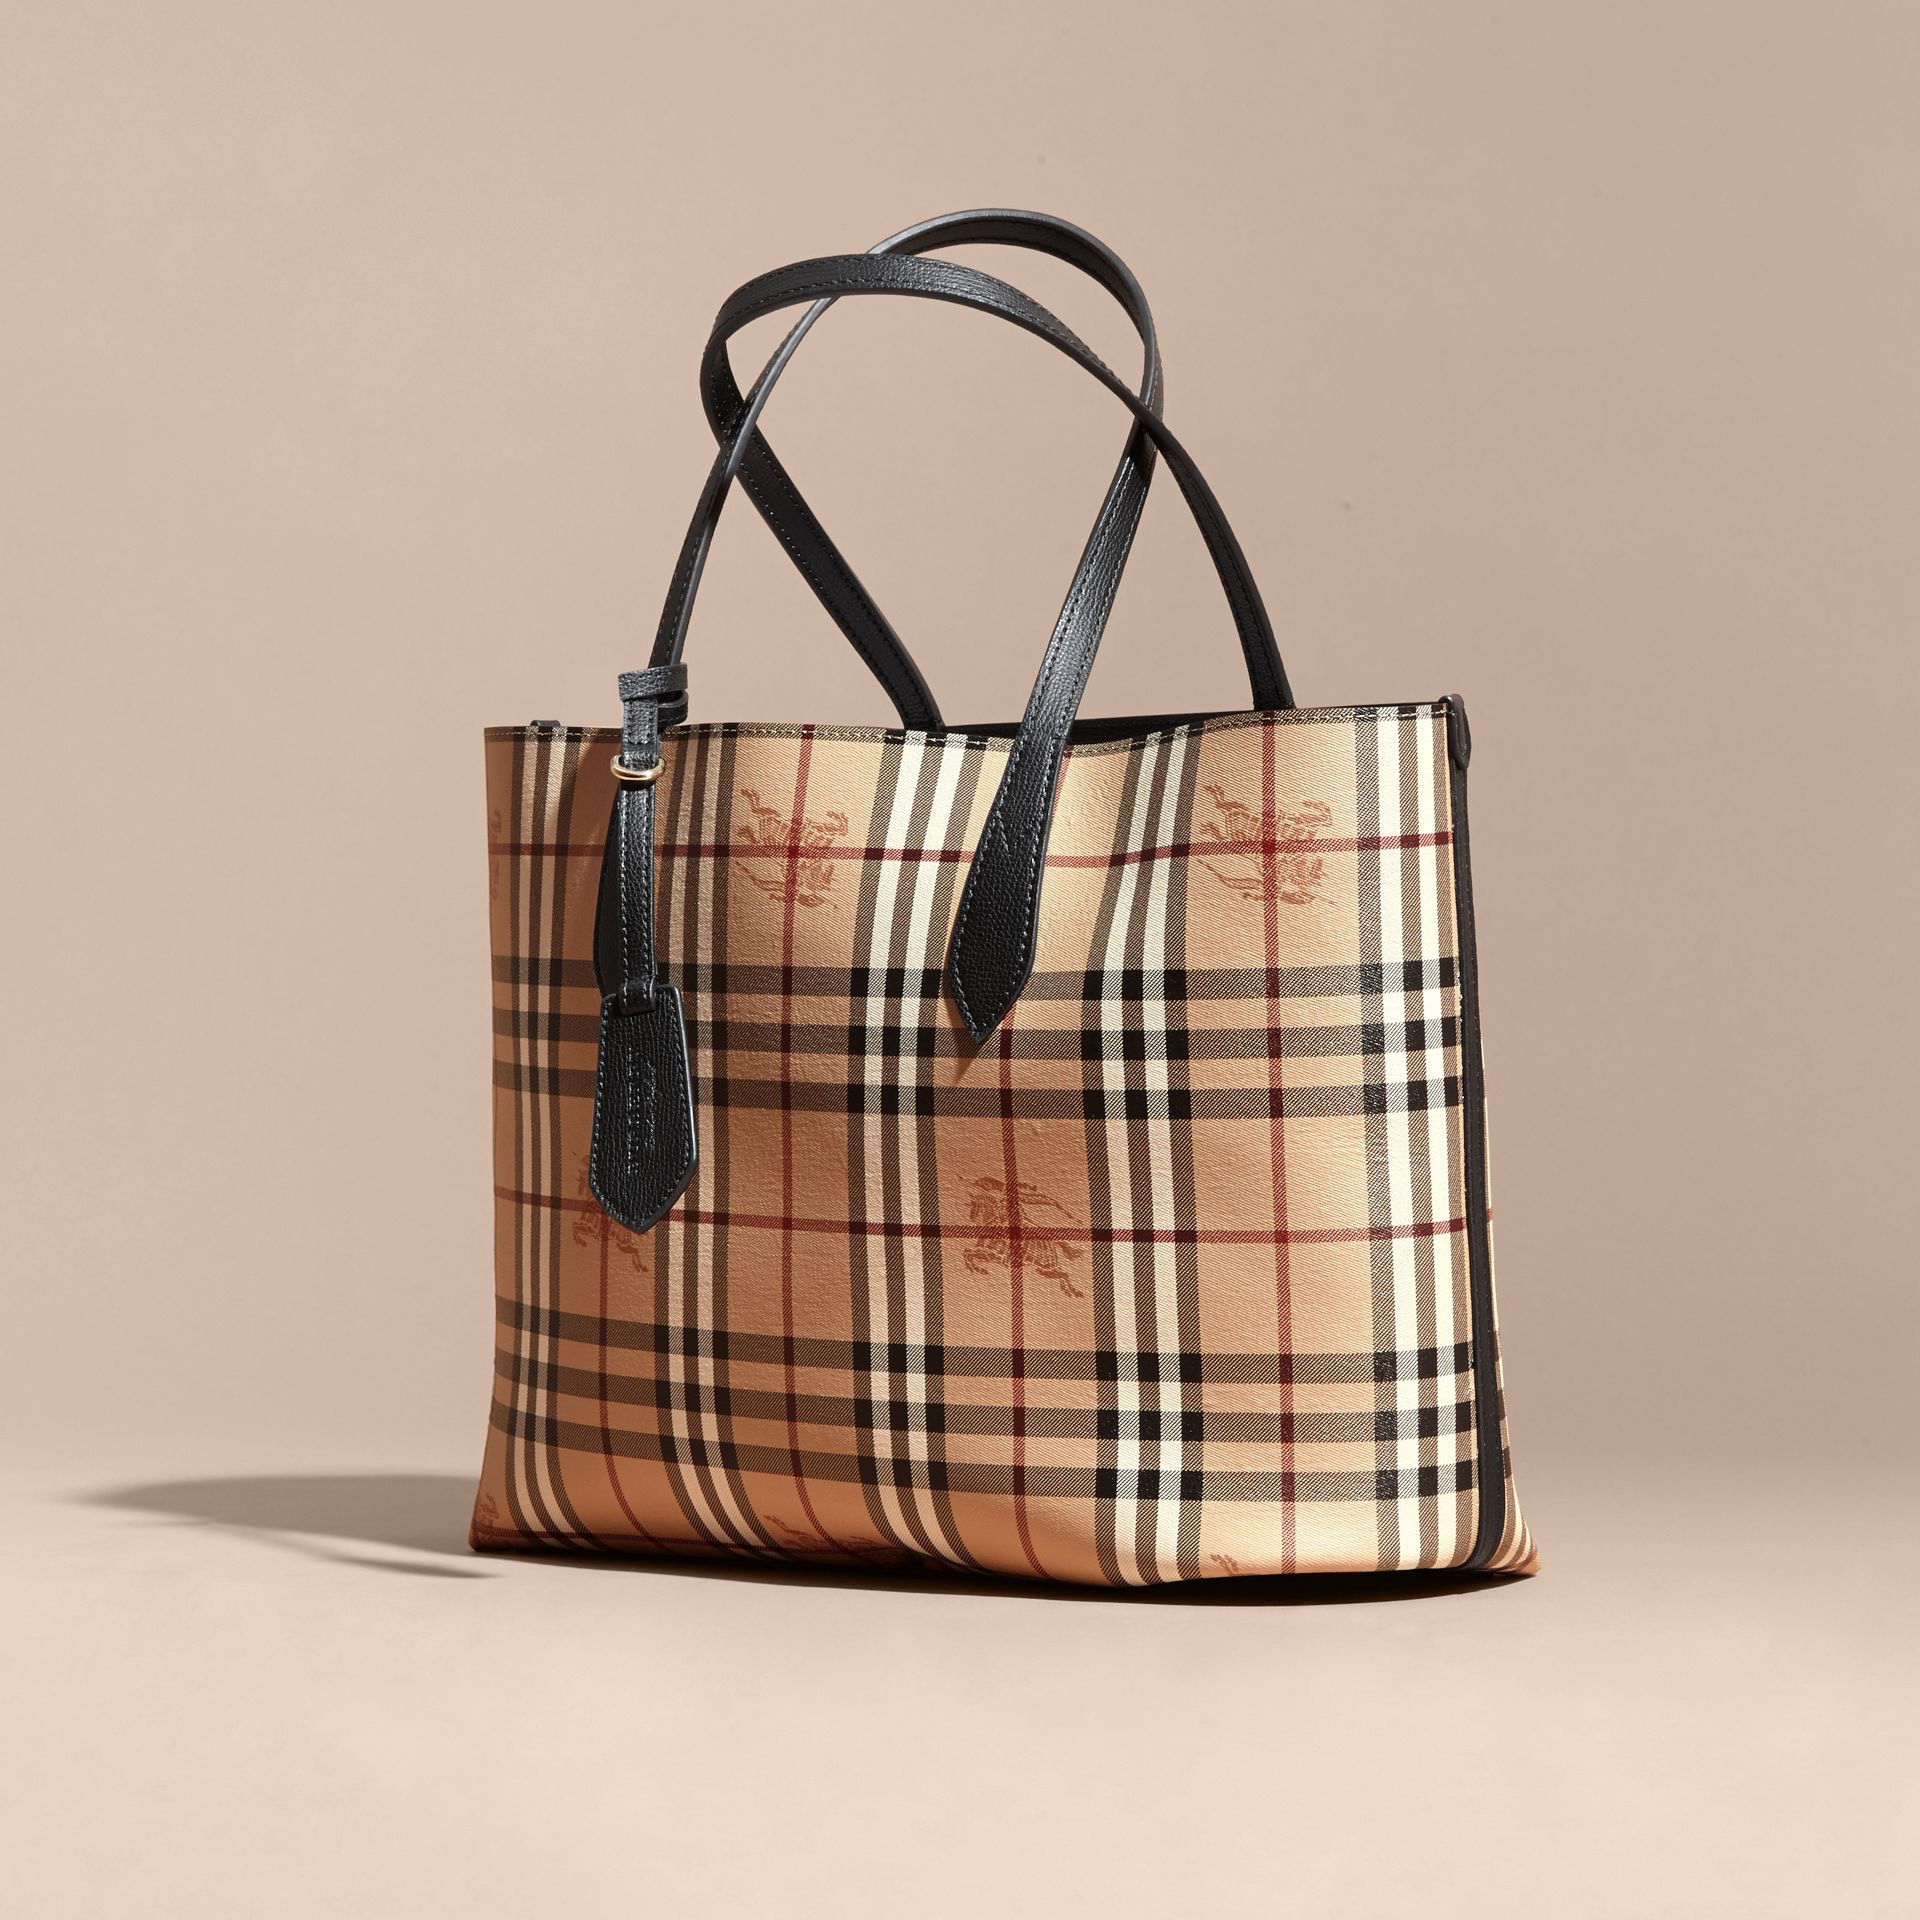 The Medium Reversible Tote in Haymarket Check and Leather in Black - Women | Burberry - gallery image 8